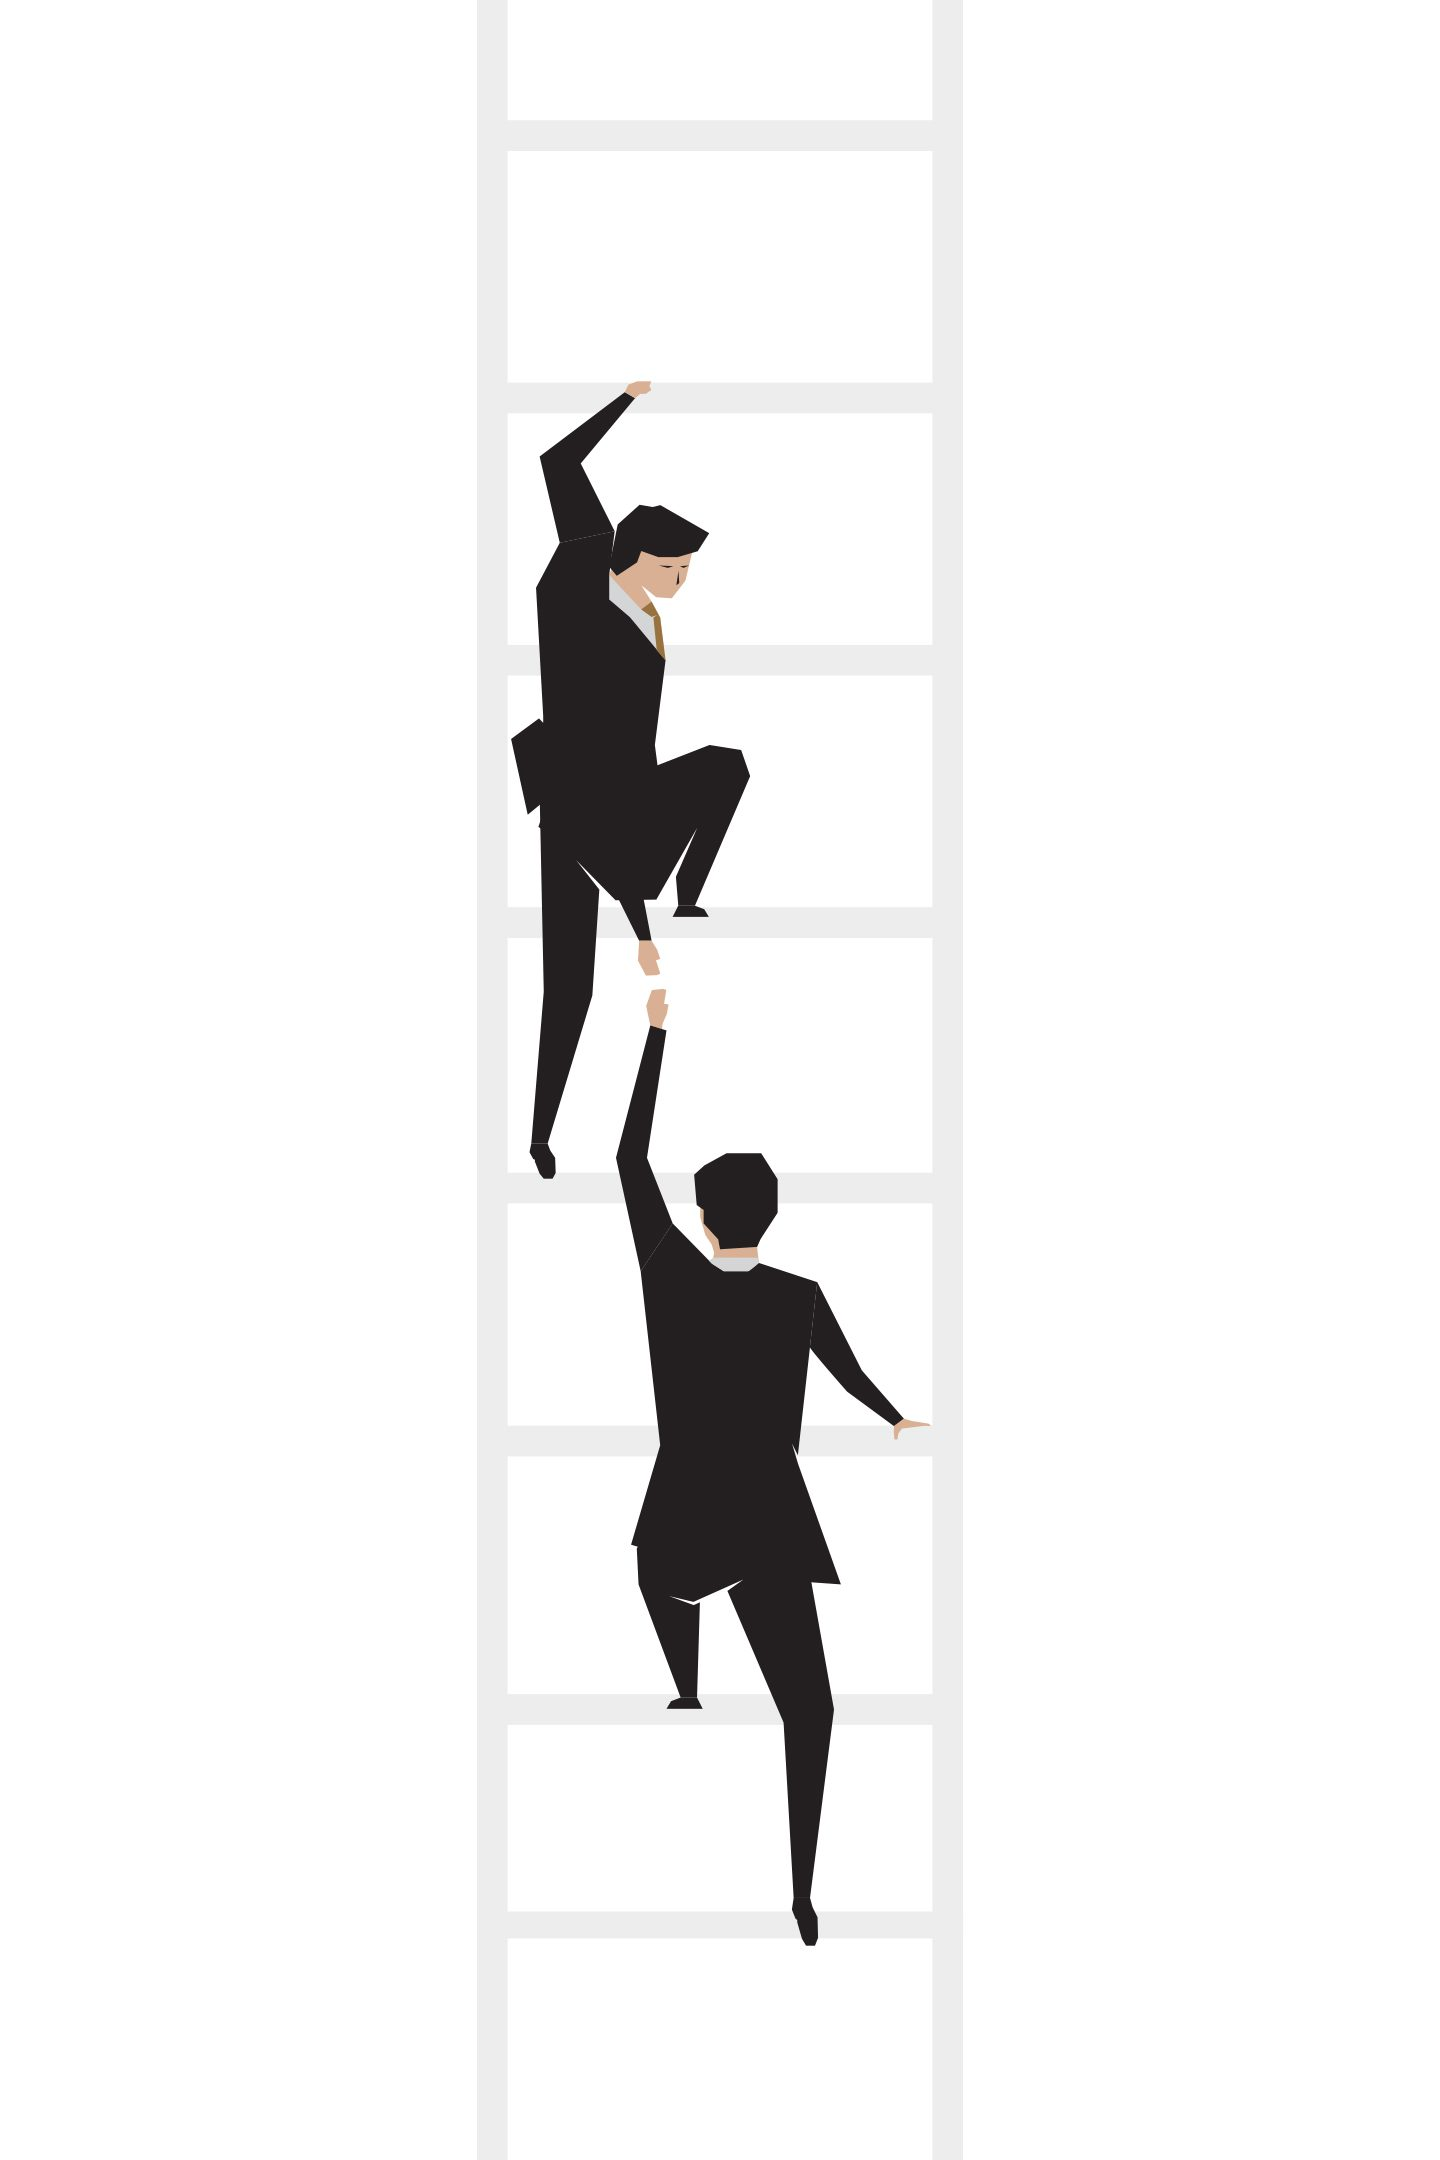 illustration of a man in a suit helping his employee climb a ladder